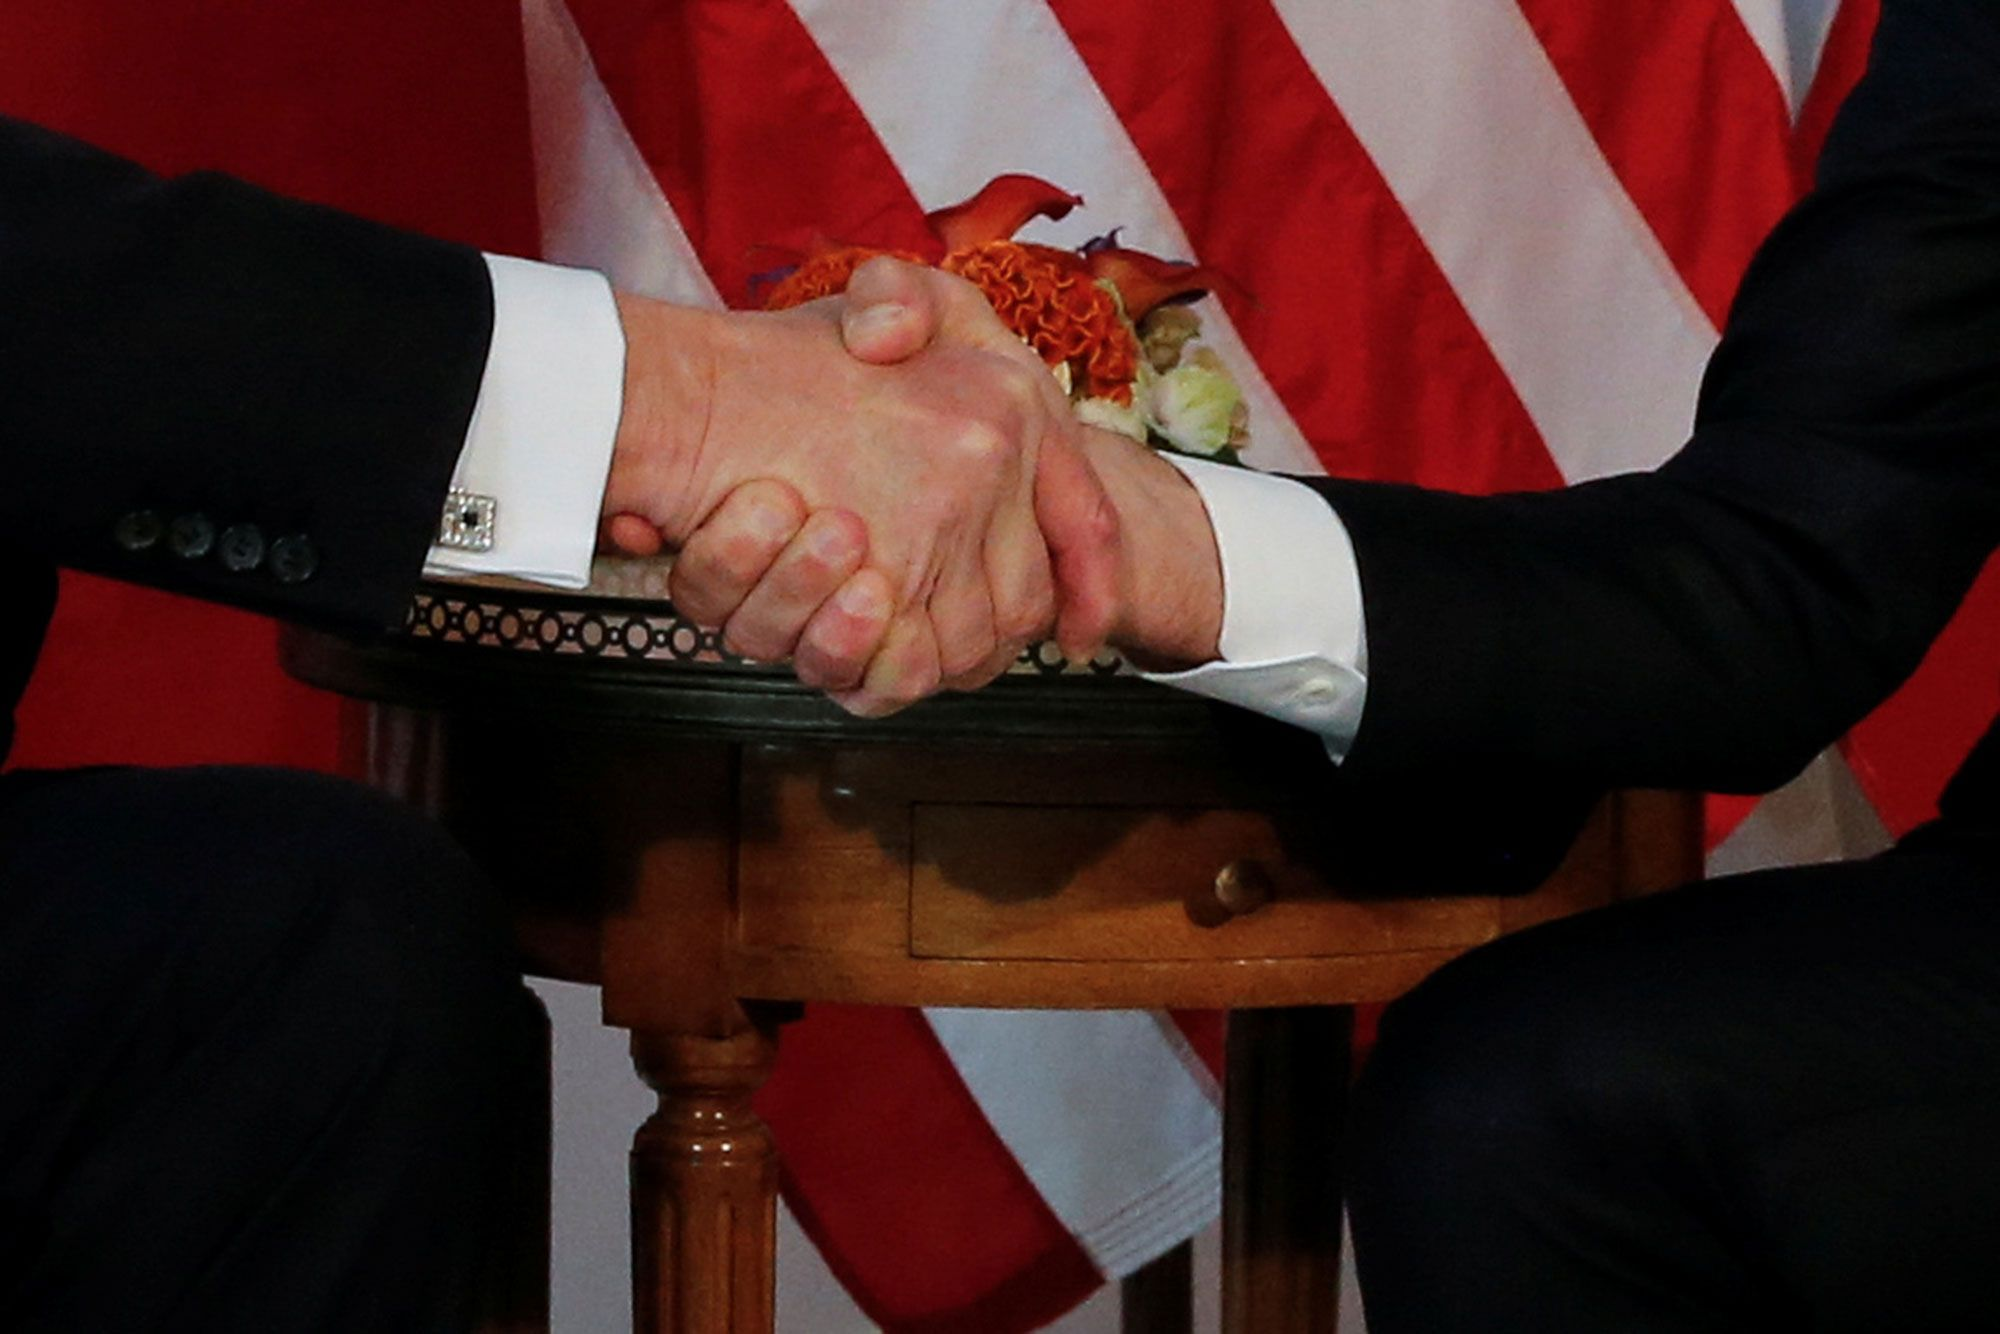 Shaking hands with President Trump